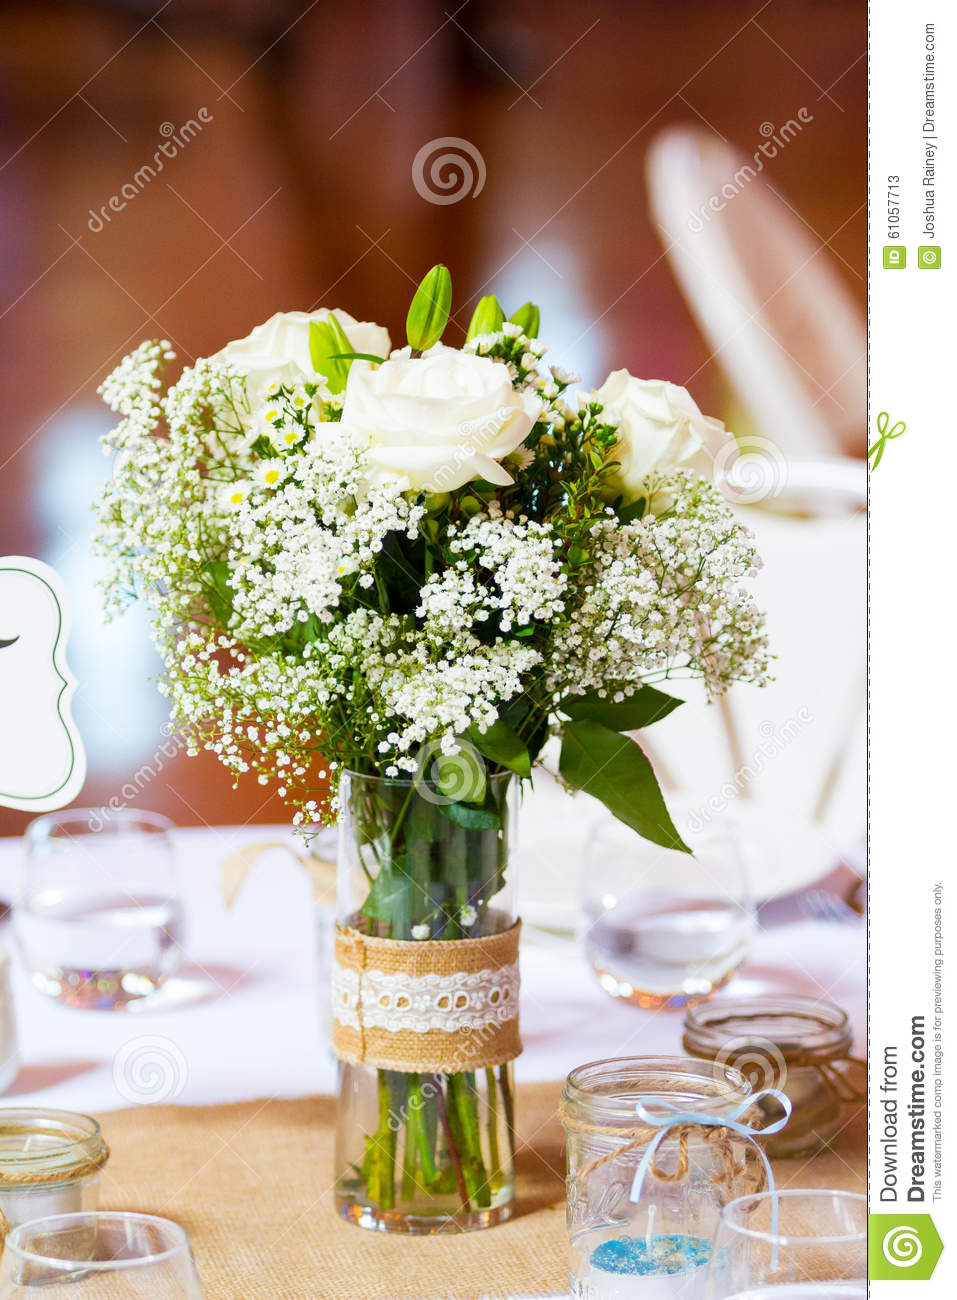 table decoration for wedding reception. Wedding Reception Table Centerpiece Stock Image Of Stunning Centerpieces For Contemporary